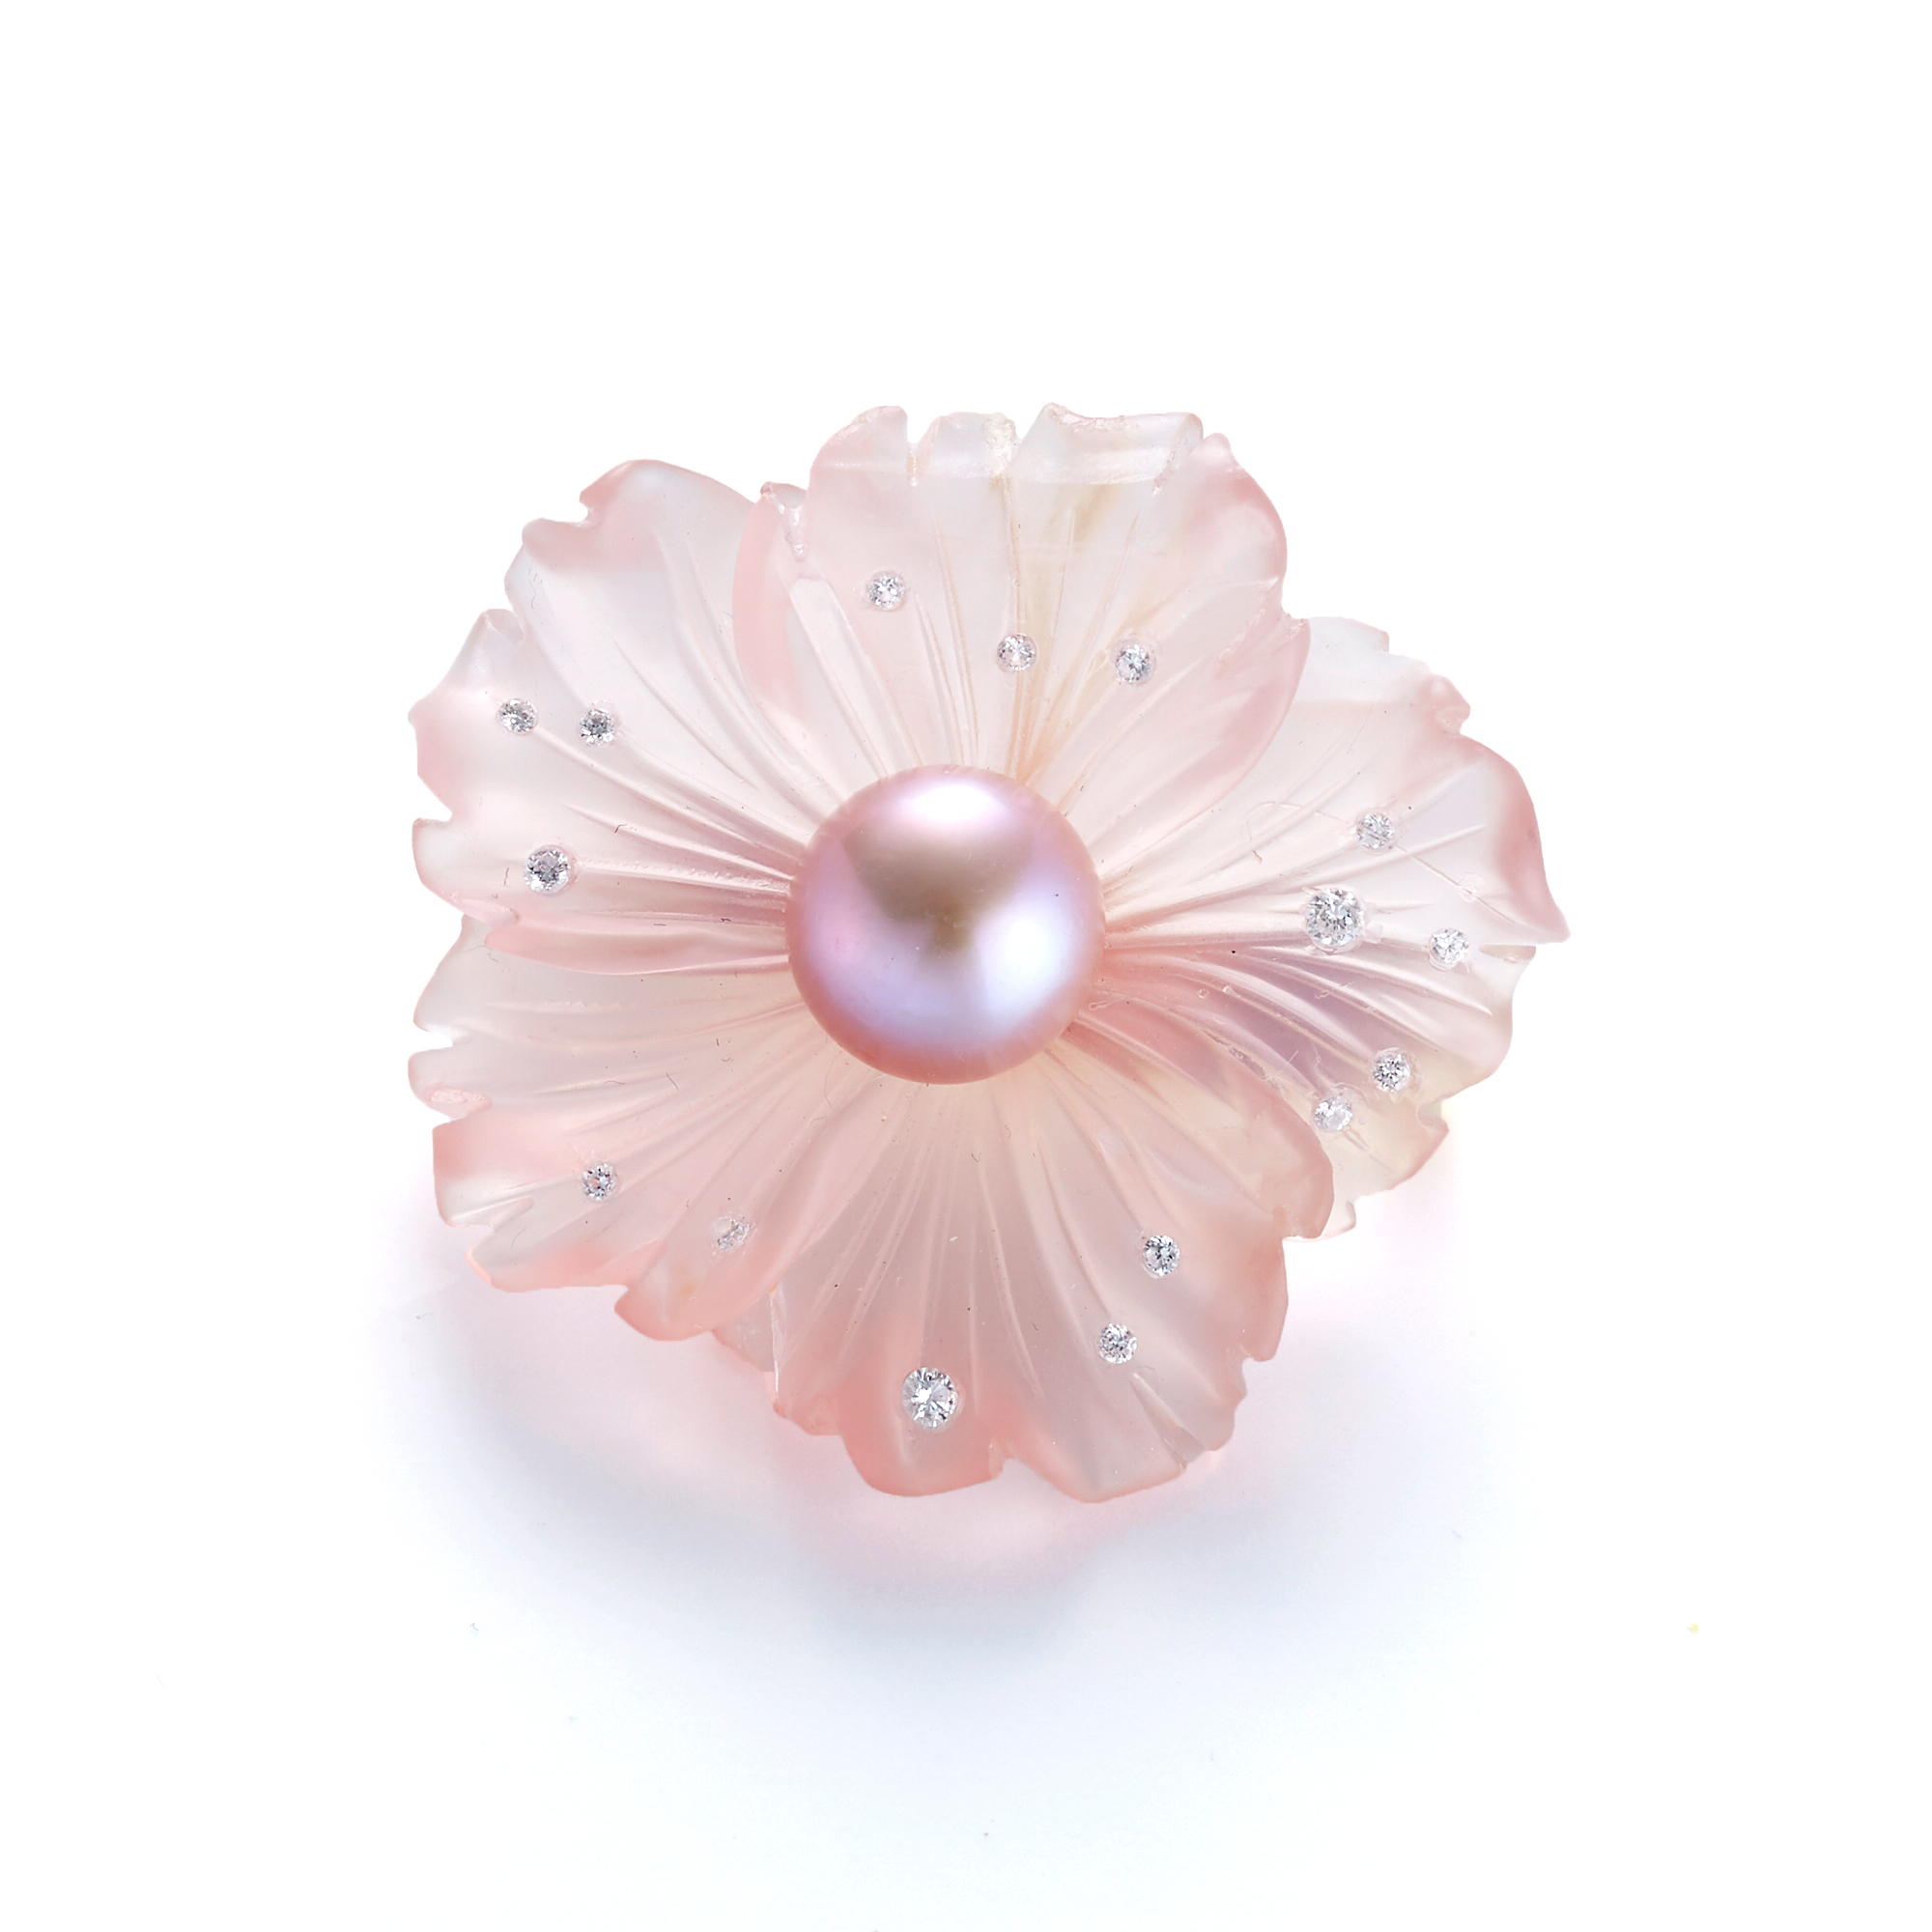 Russell Trusso Pink Pearl & Rose Quartz Carved Flower Brooch